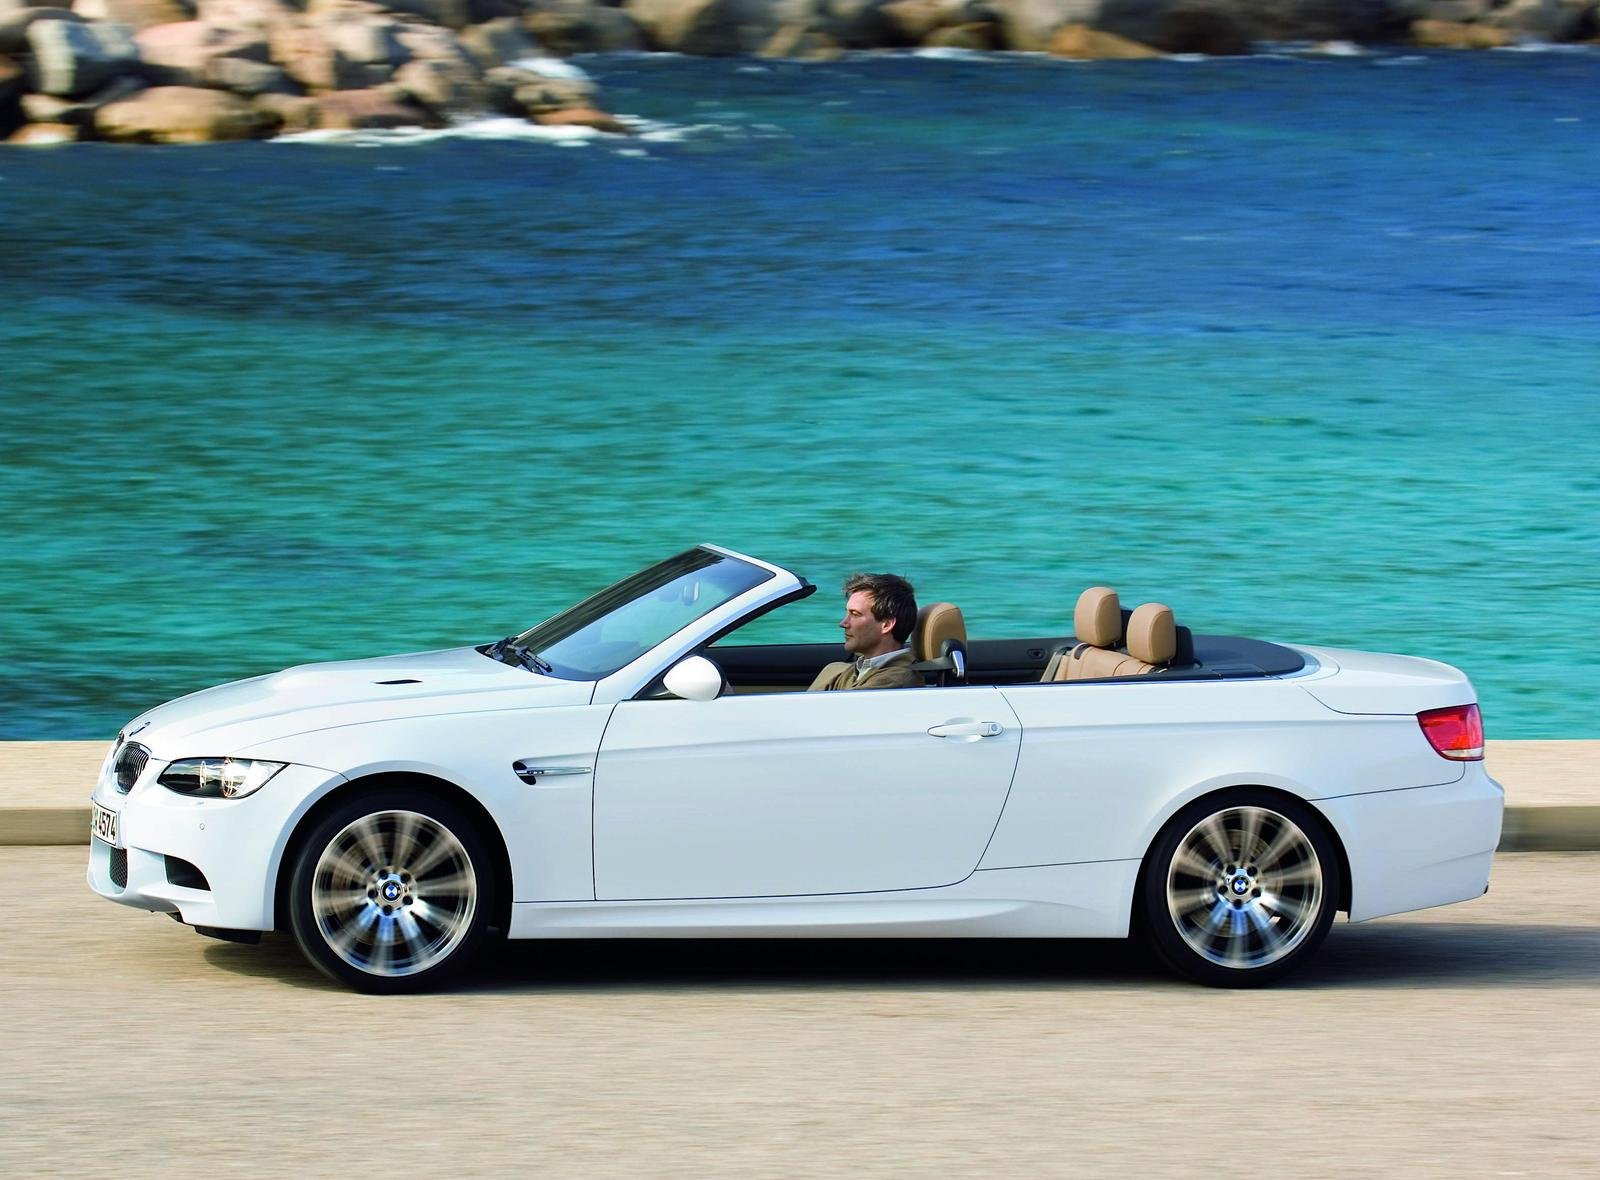 2009 bmw m3 convertible picture 226627 car review. Black Bedroom Furniture Sets. Home Design Ideas